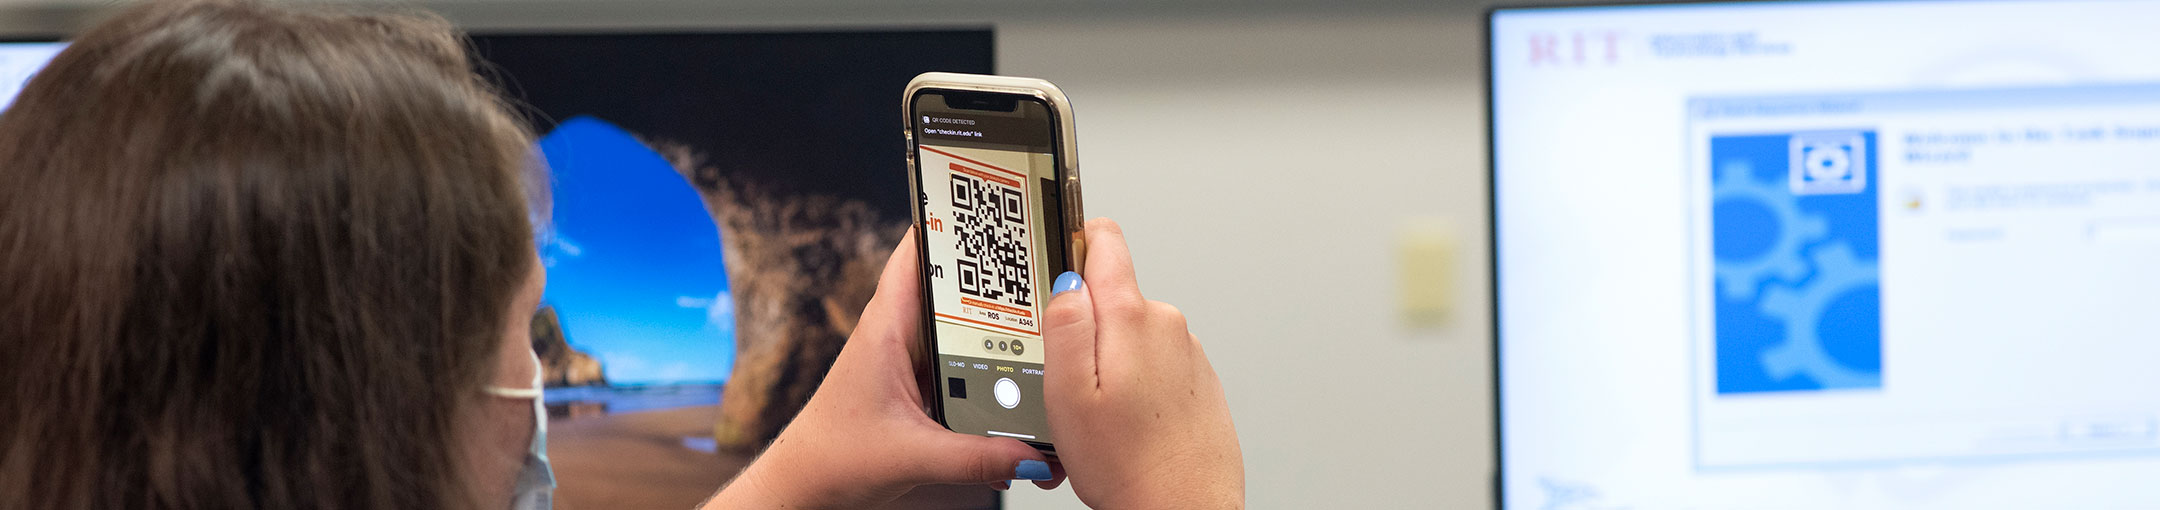 Student wearing a mask scanning a QR code on her phone